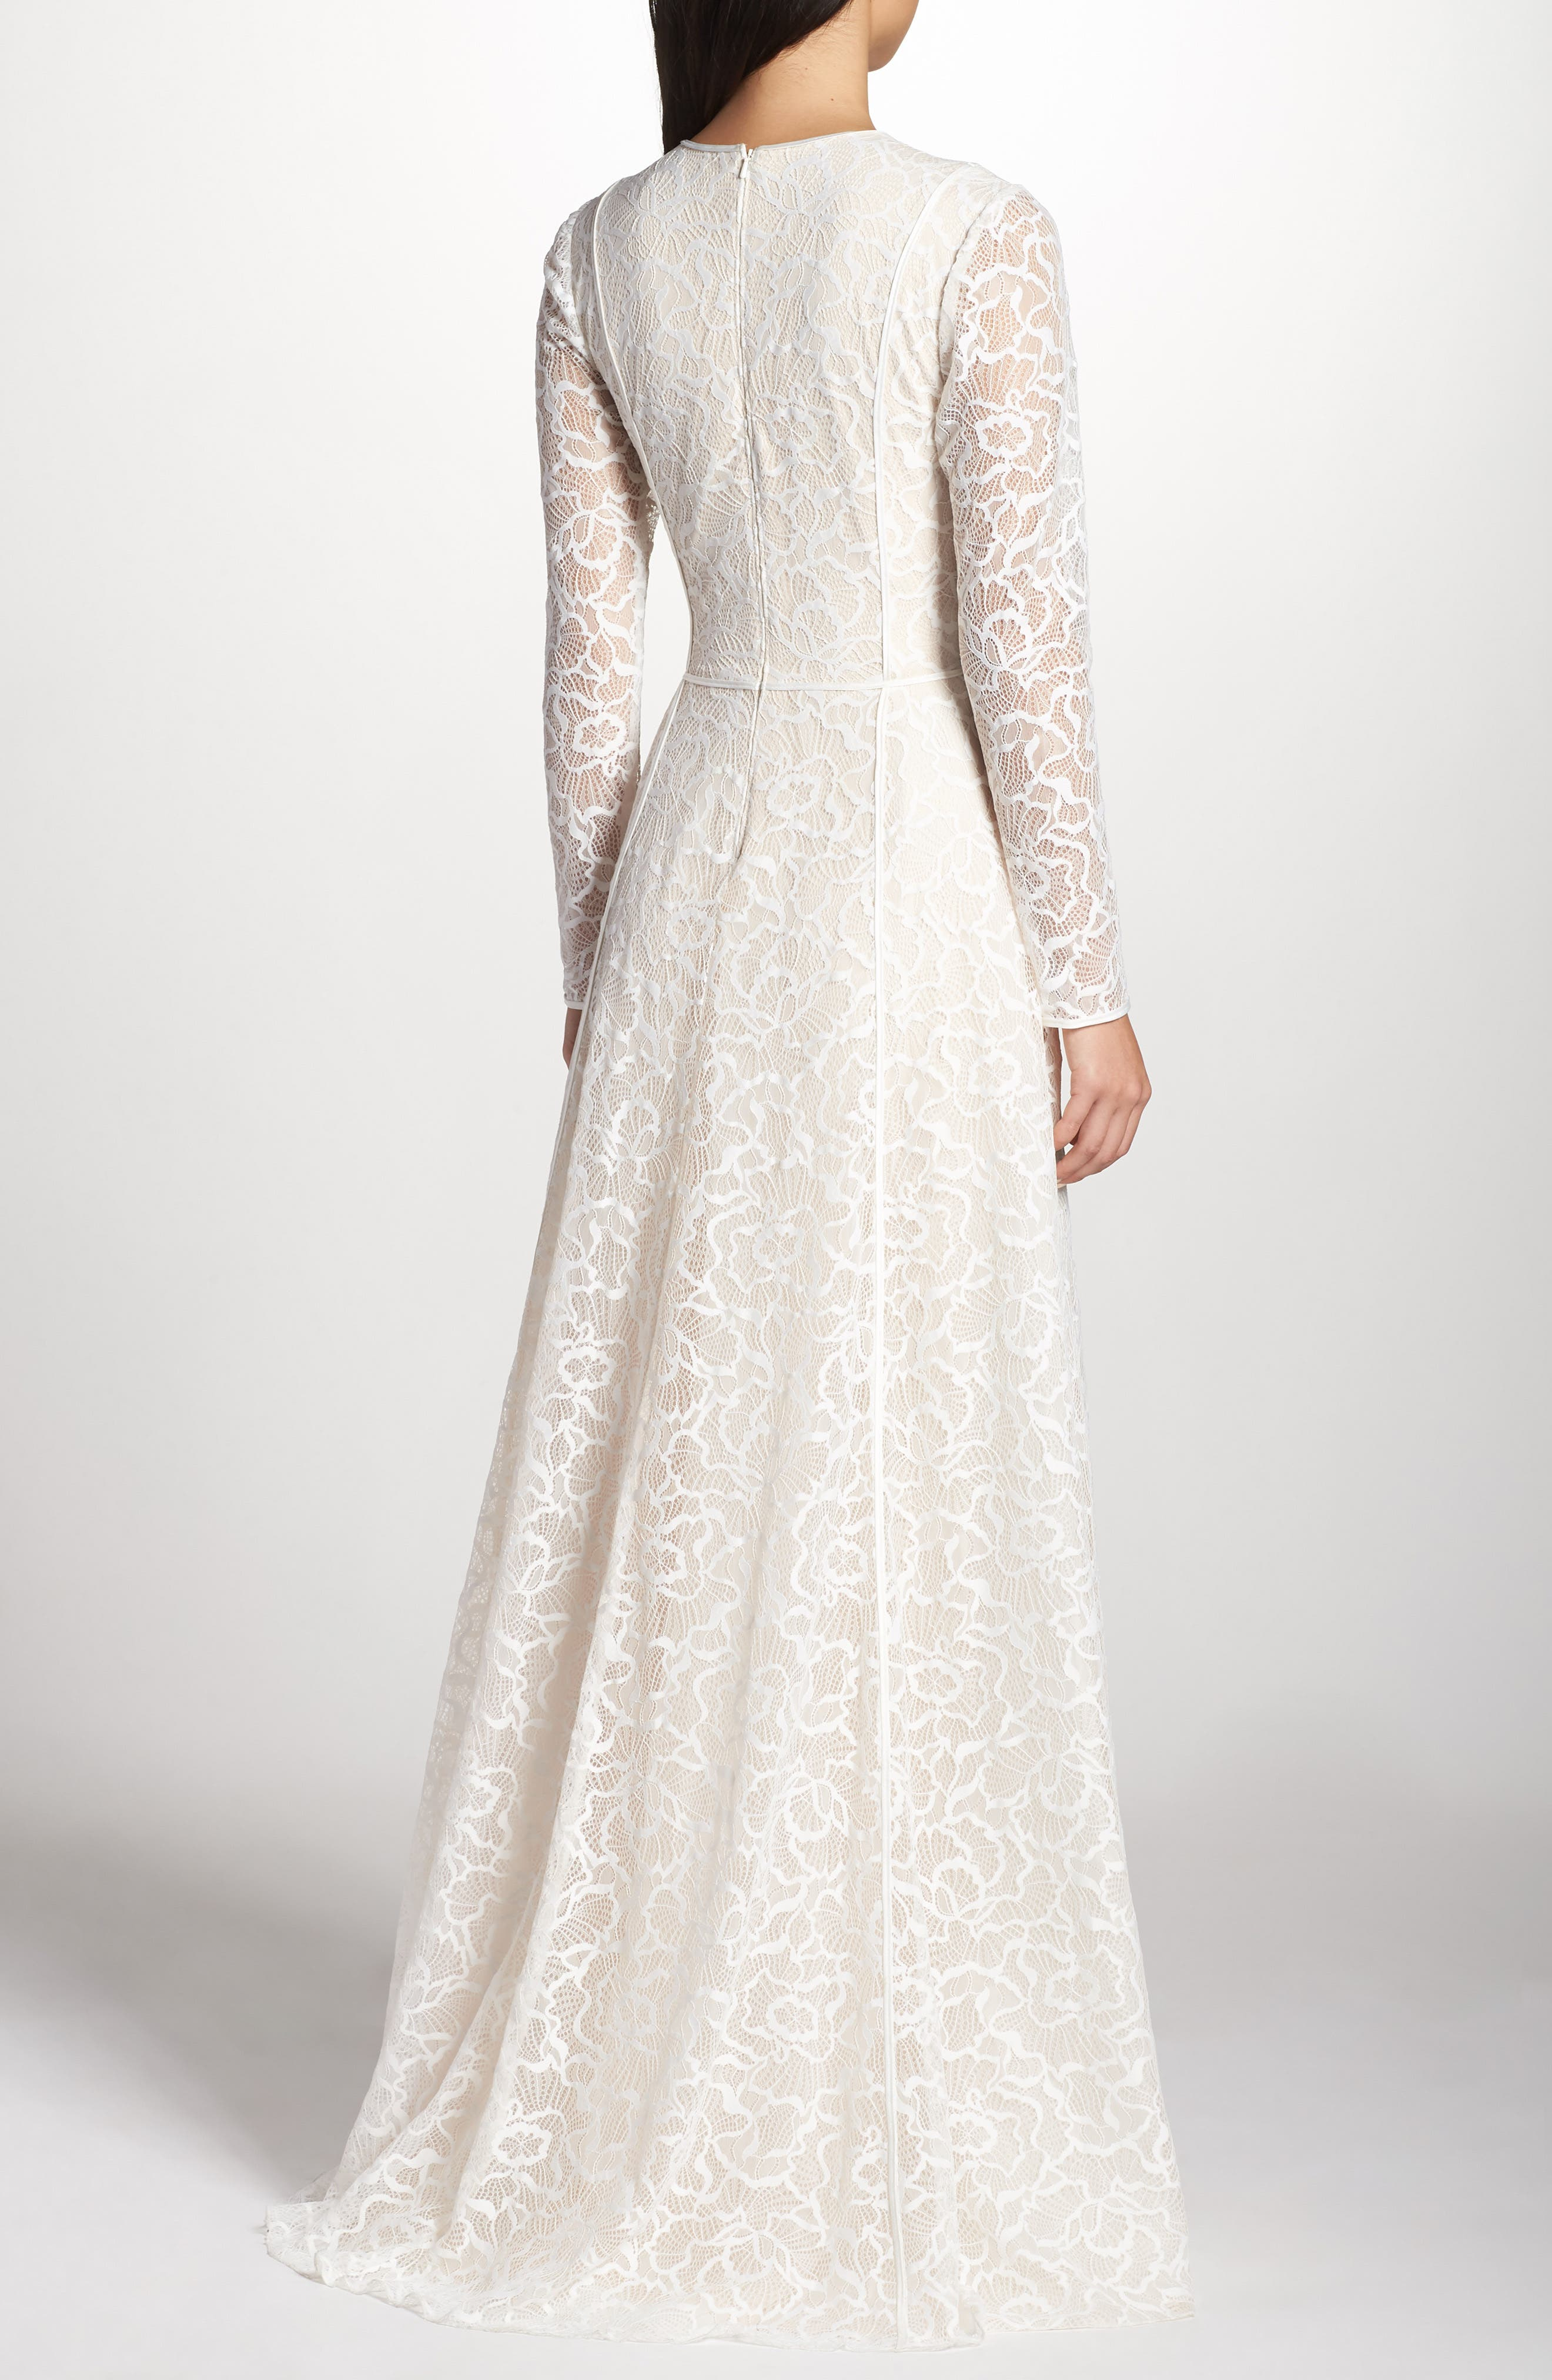 Sheer Sleeve Lace A-Line Gown,                             Alternate thumbnail 2, color,                             IVORY/ PETAL